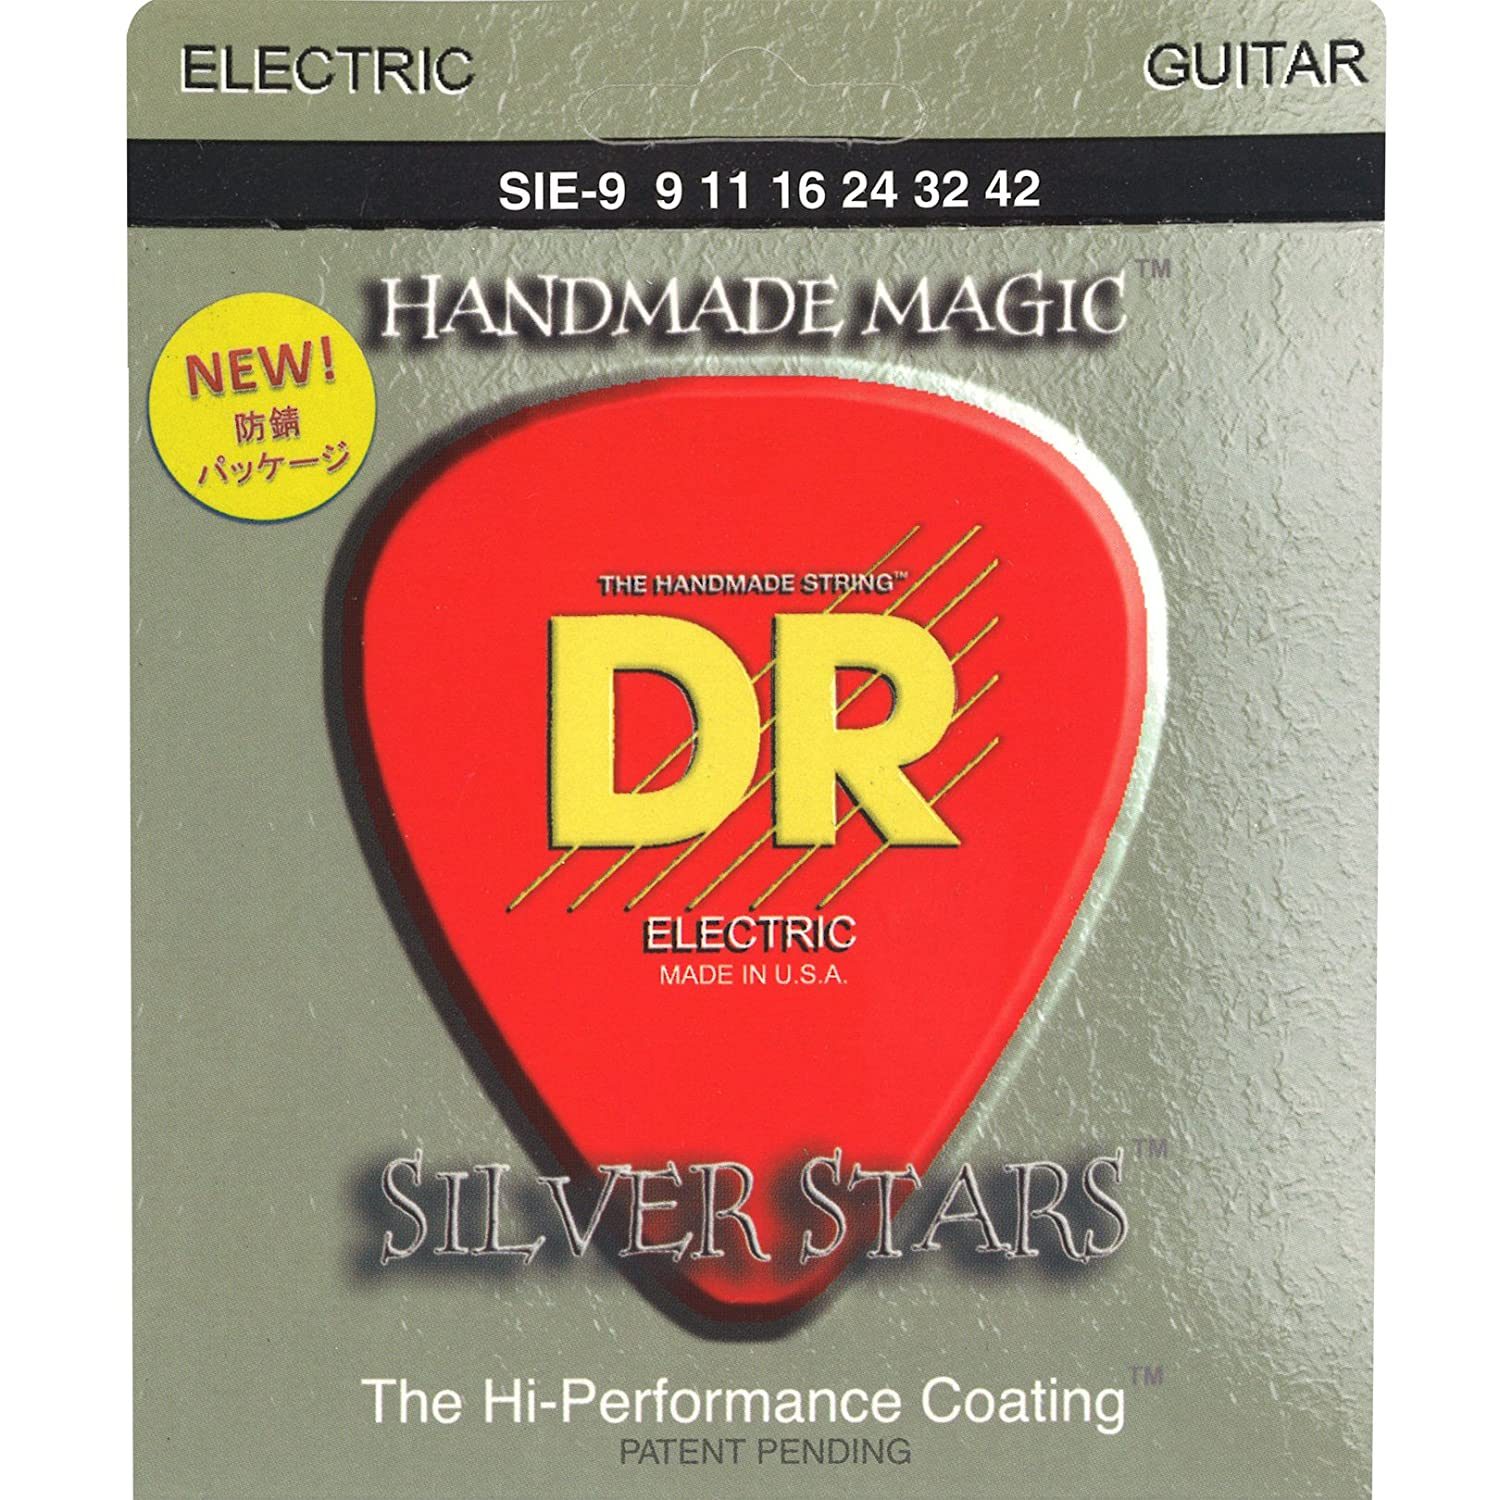 DR Strings Silver Stars-Extra-Life Silver Coated Electric 9-42 SIE-9